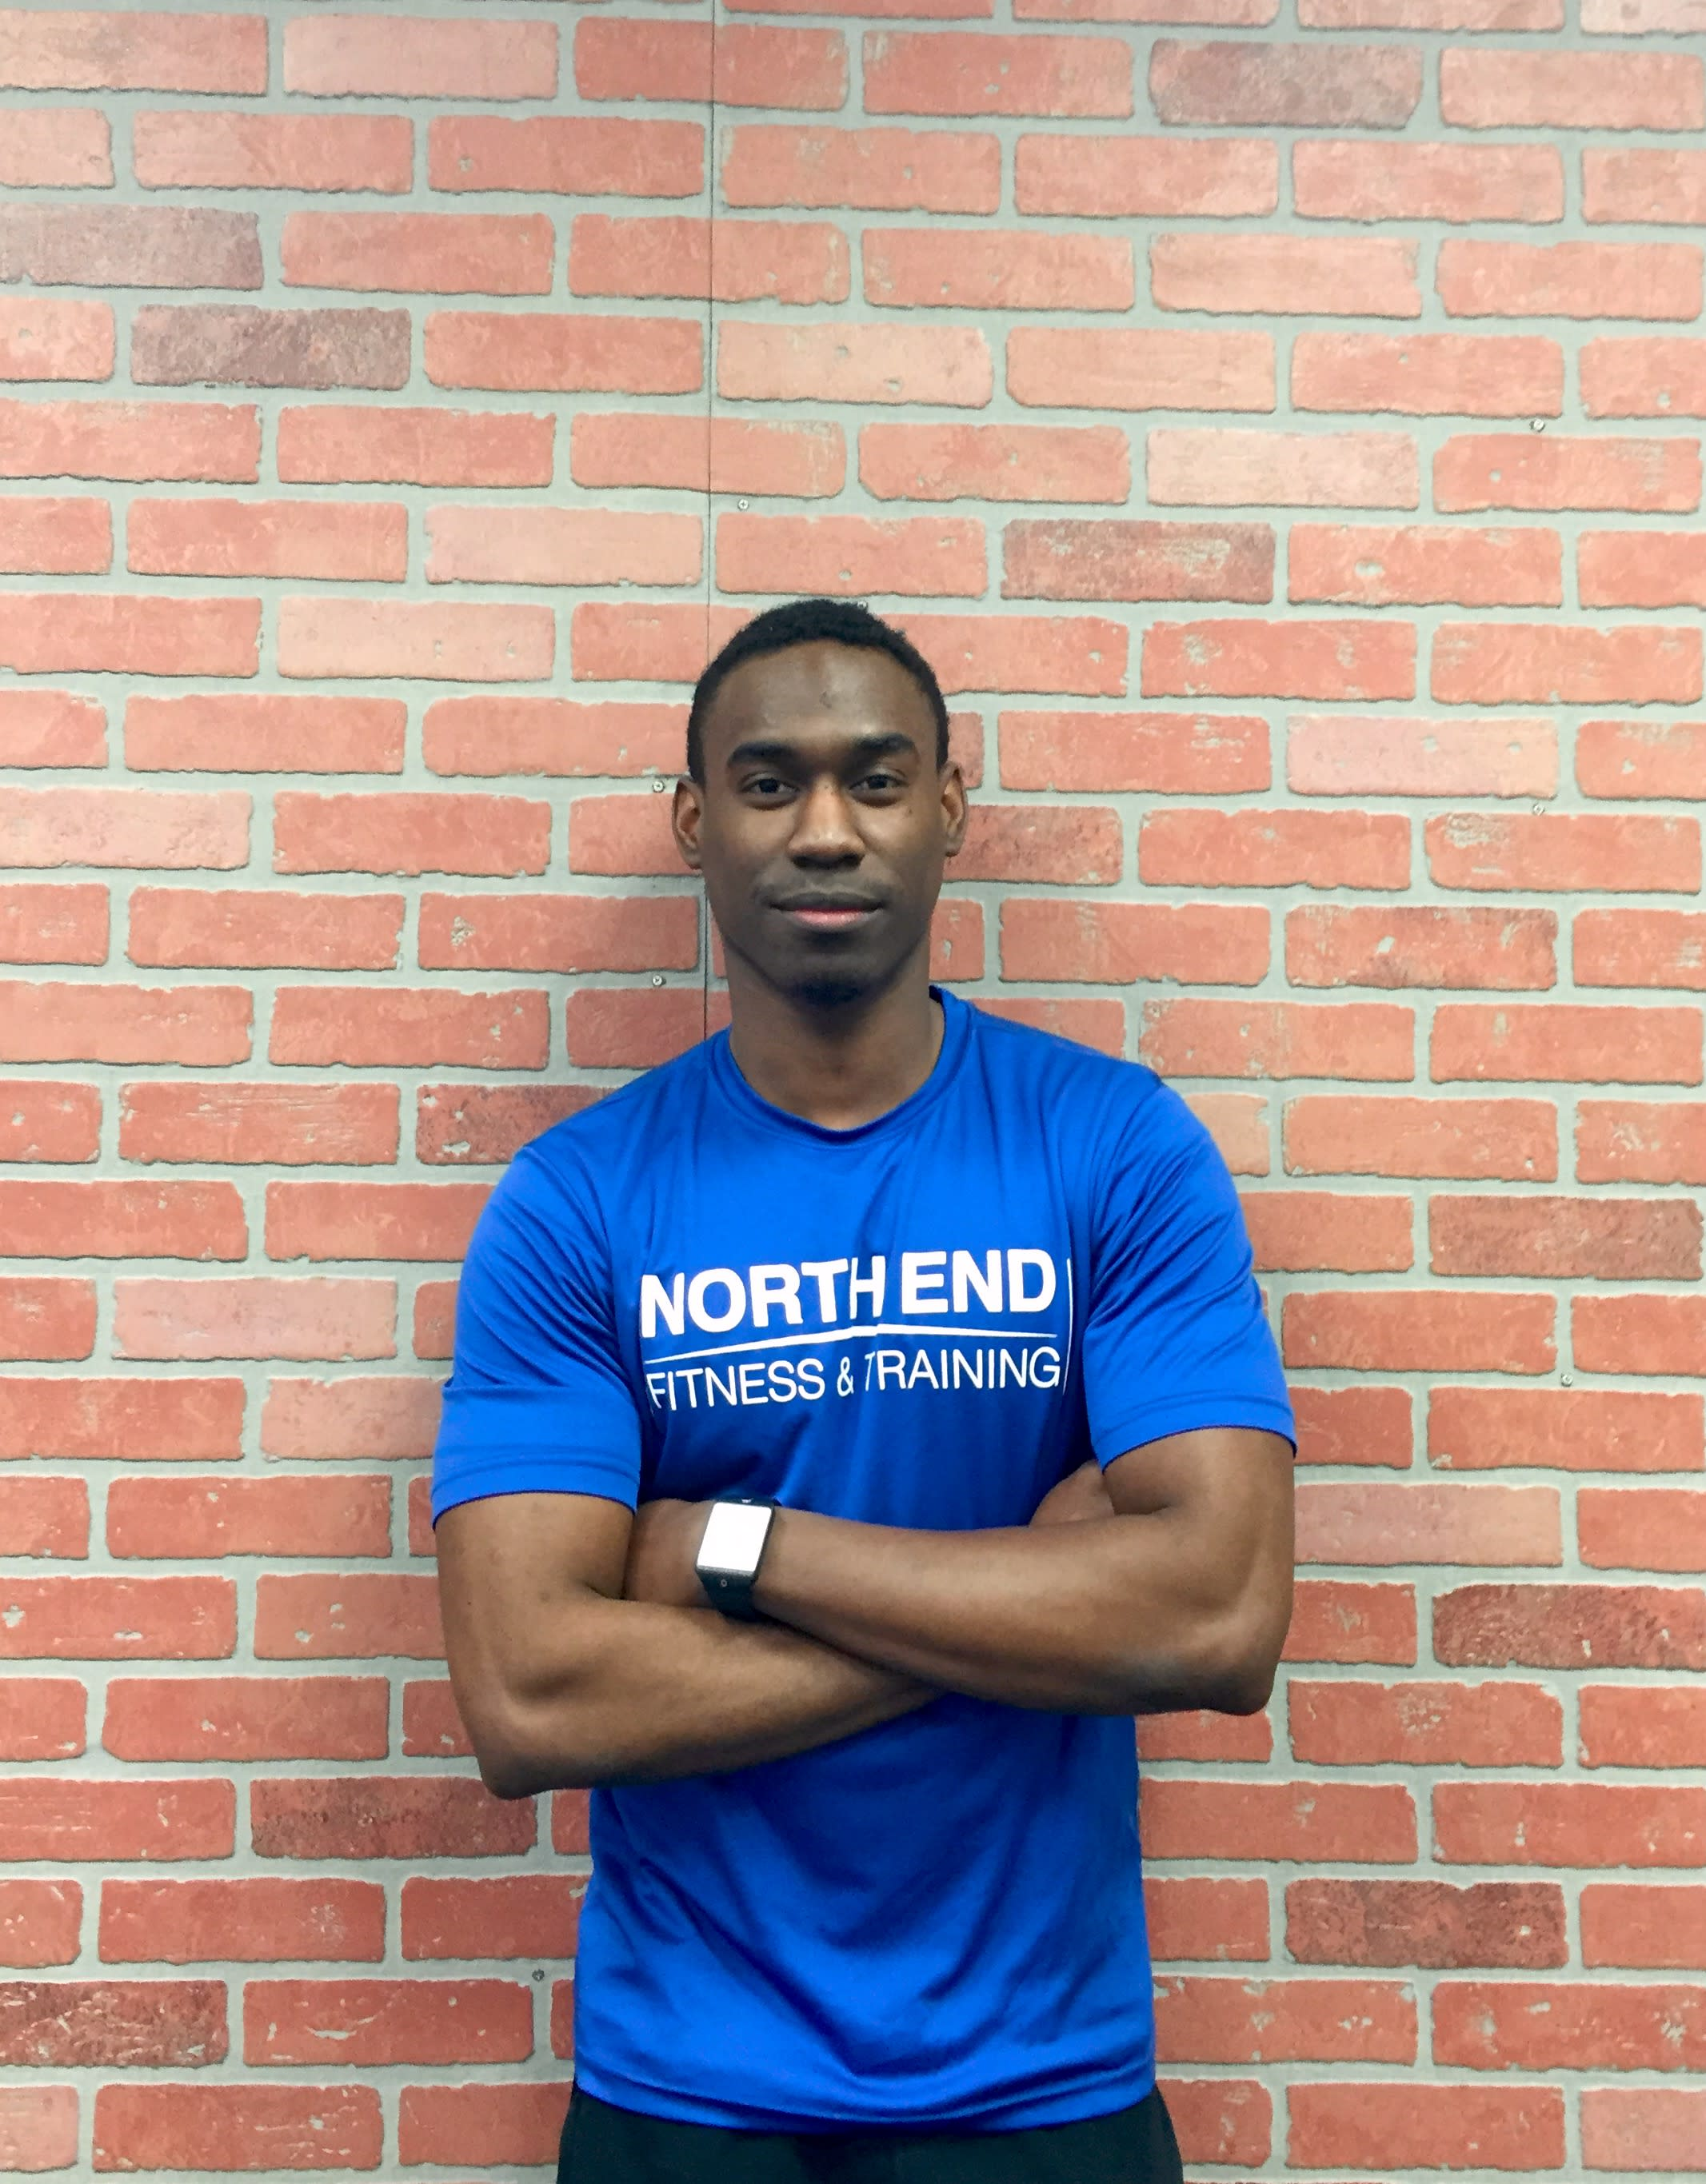 Renaldo in New Rochelle - North End Fitness & Training